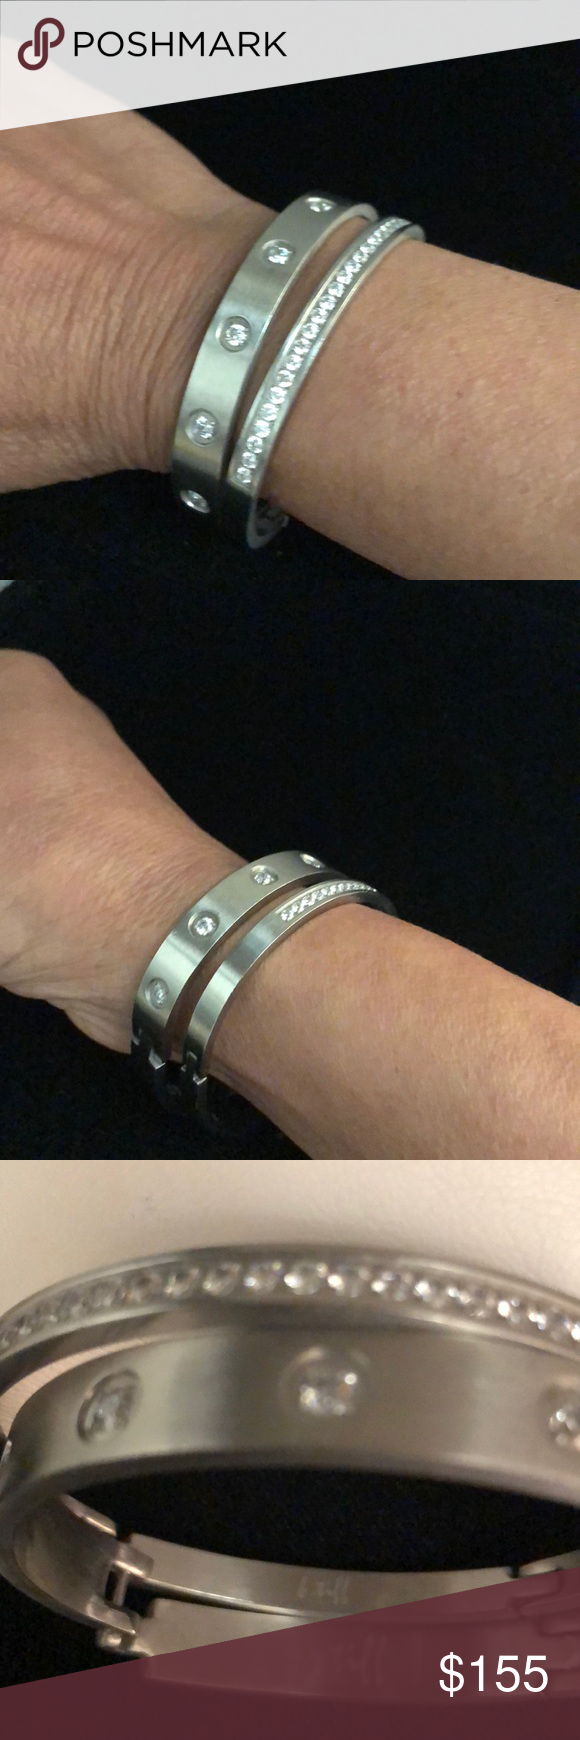 B Tiff Set Of 2 Silver Steel Bracelets Now Here S A Steal For You At Dealers Price These Bangles In Much Demand Are Bracelets Steel Bracelet Silver